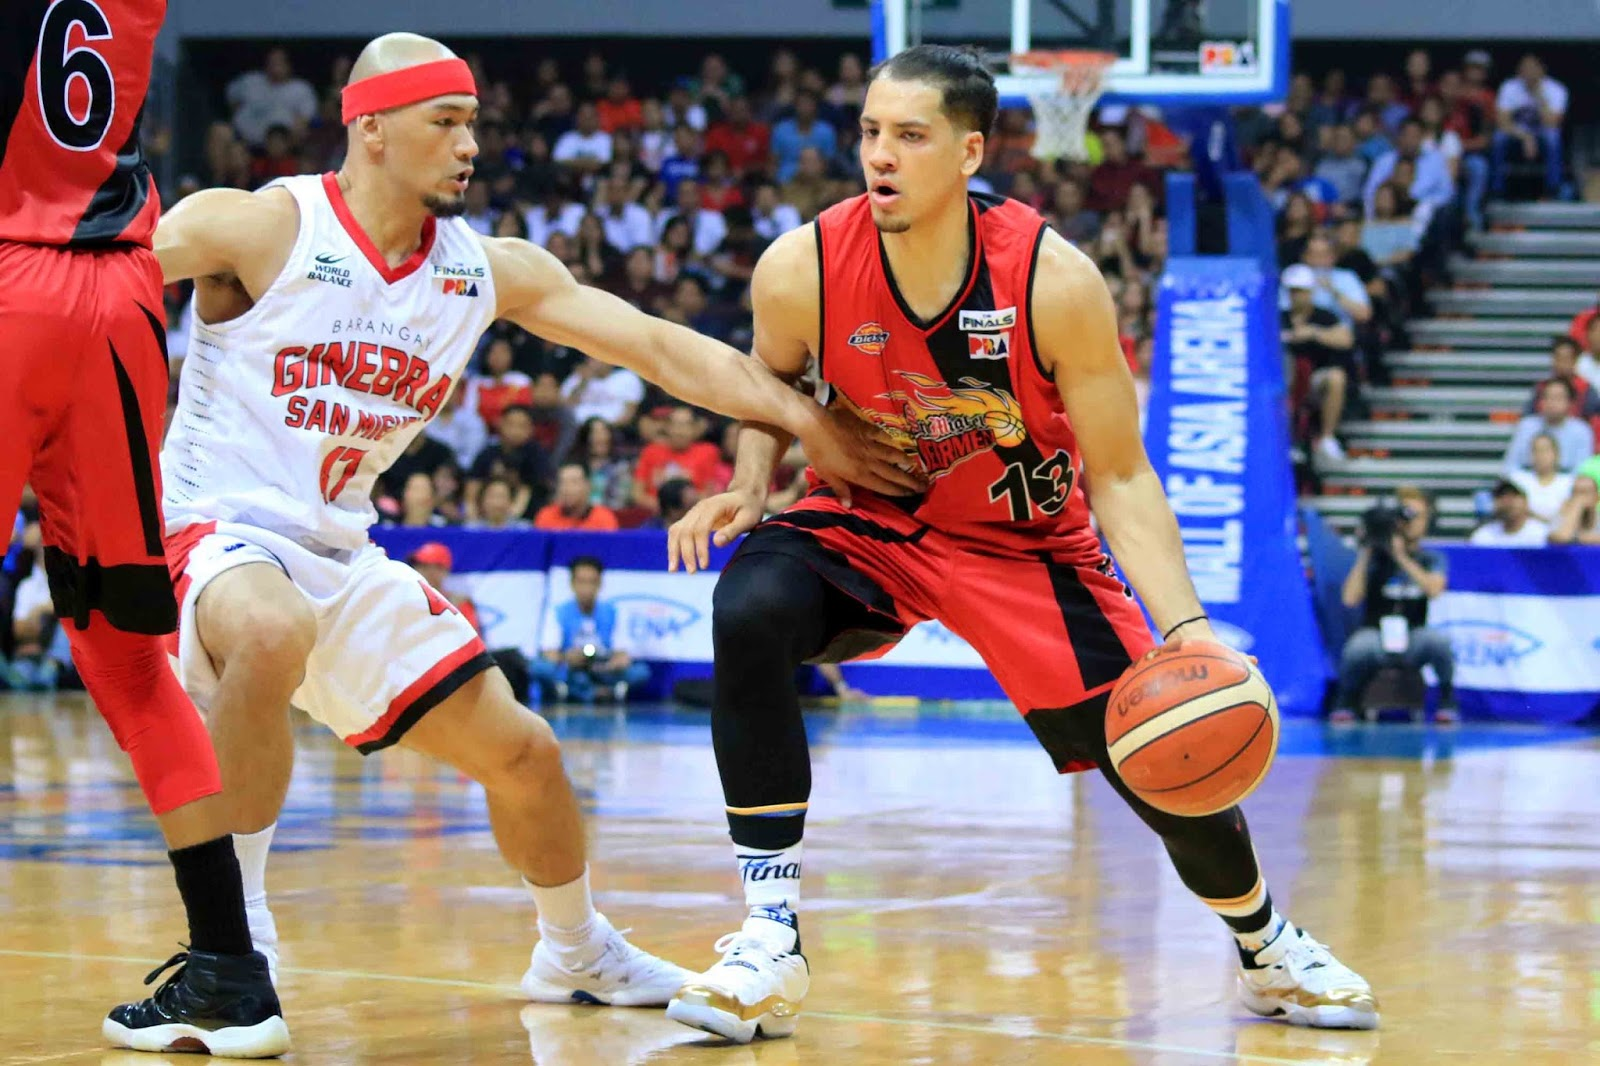 Ginebra vs. San Miguel Game 2 PBA Finals 2017